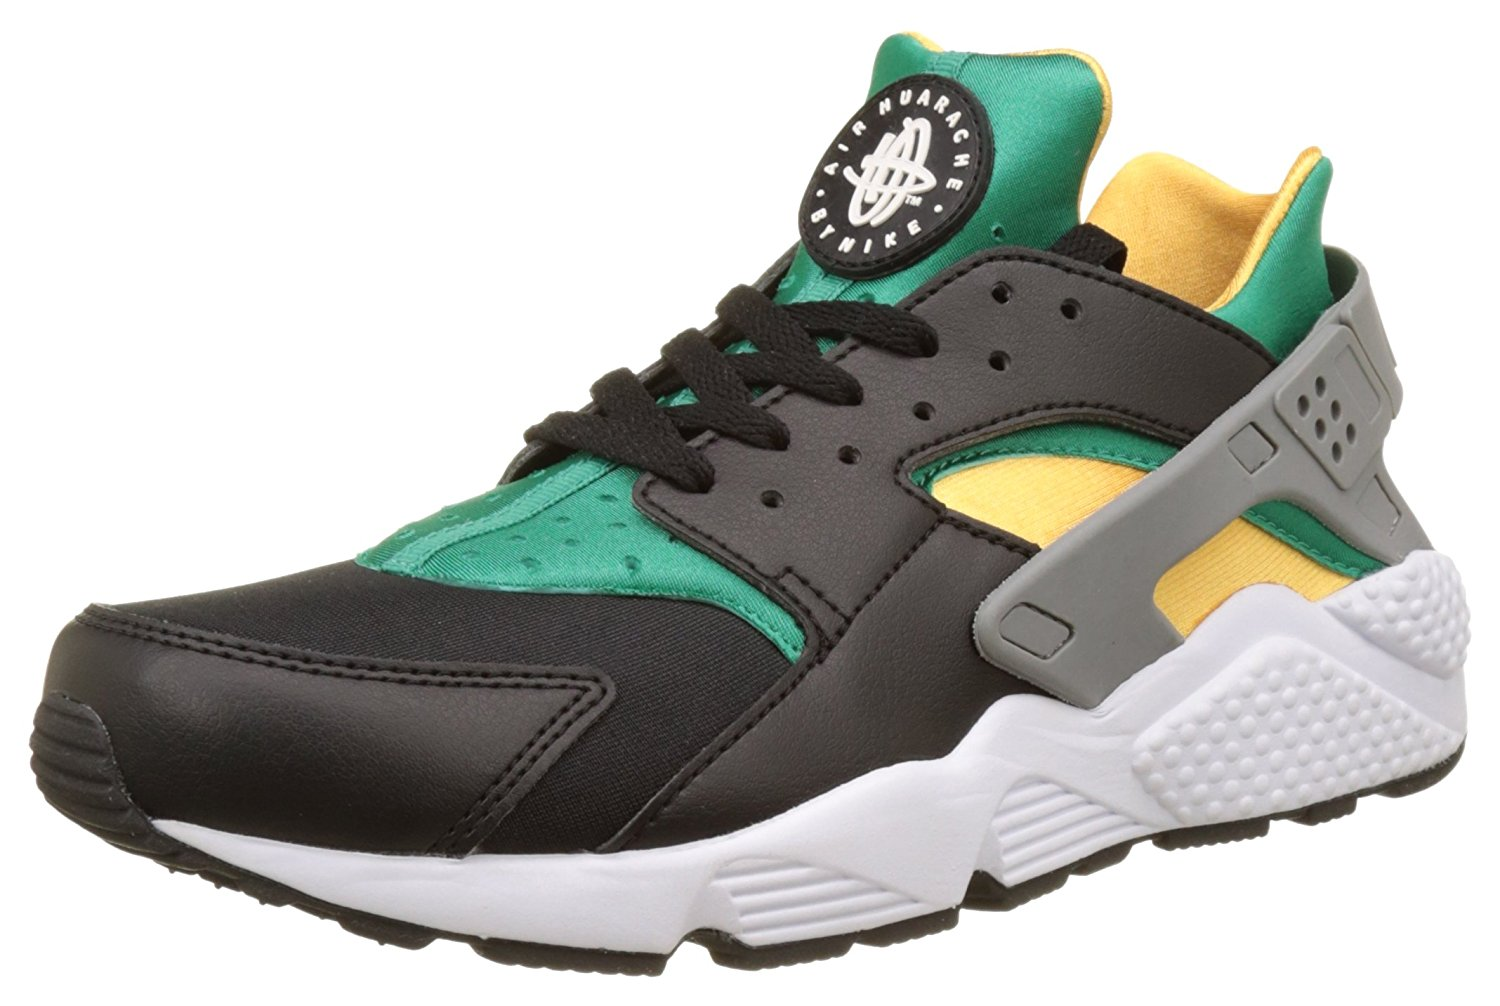 promo code a599a 7fc9f Cheap Huarache Aliexpress, find Huarache Aliexpress deals on ...